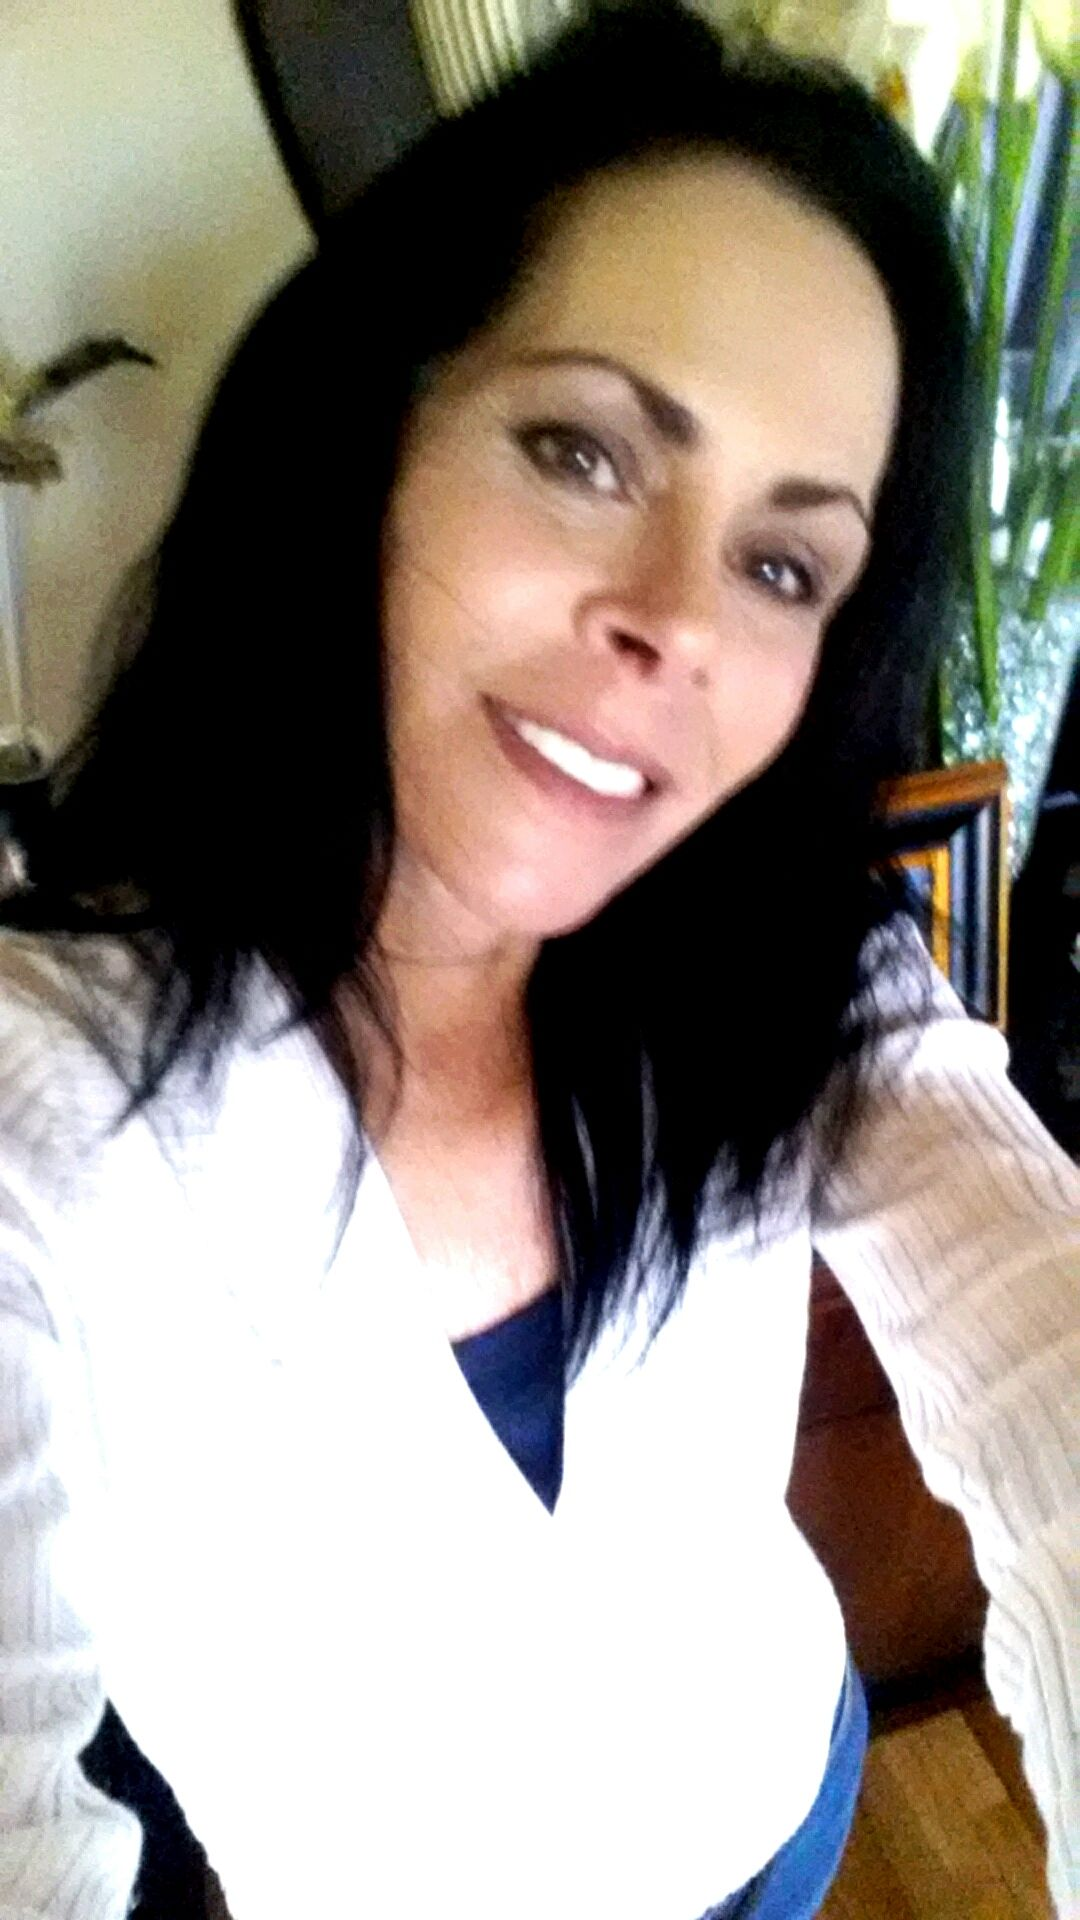 singles over 50 in huntington station Matchcom, the leading online dating resource for singles search through thousands of personals and photos go ahead, it's free to look.